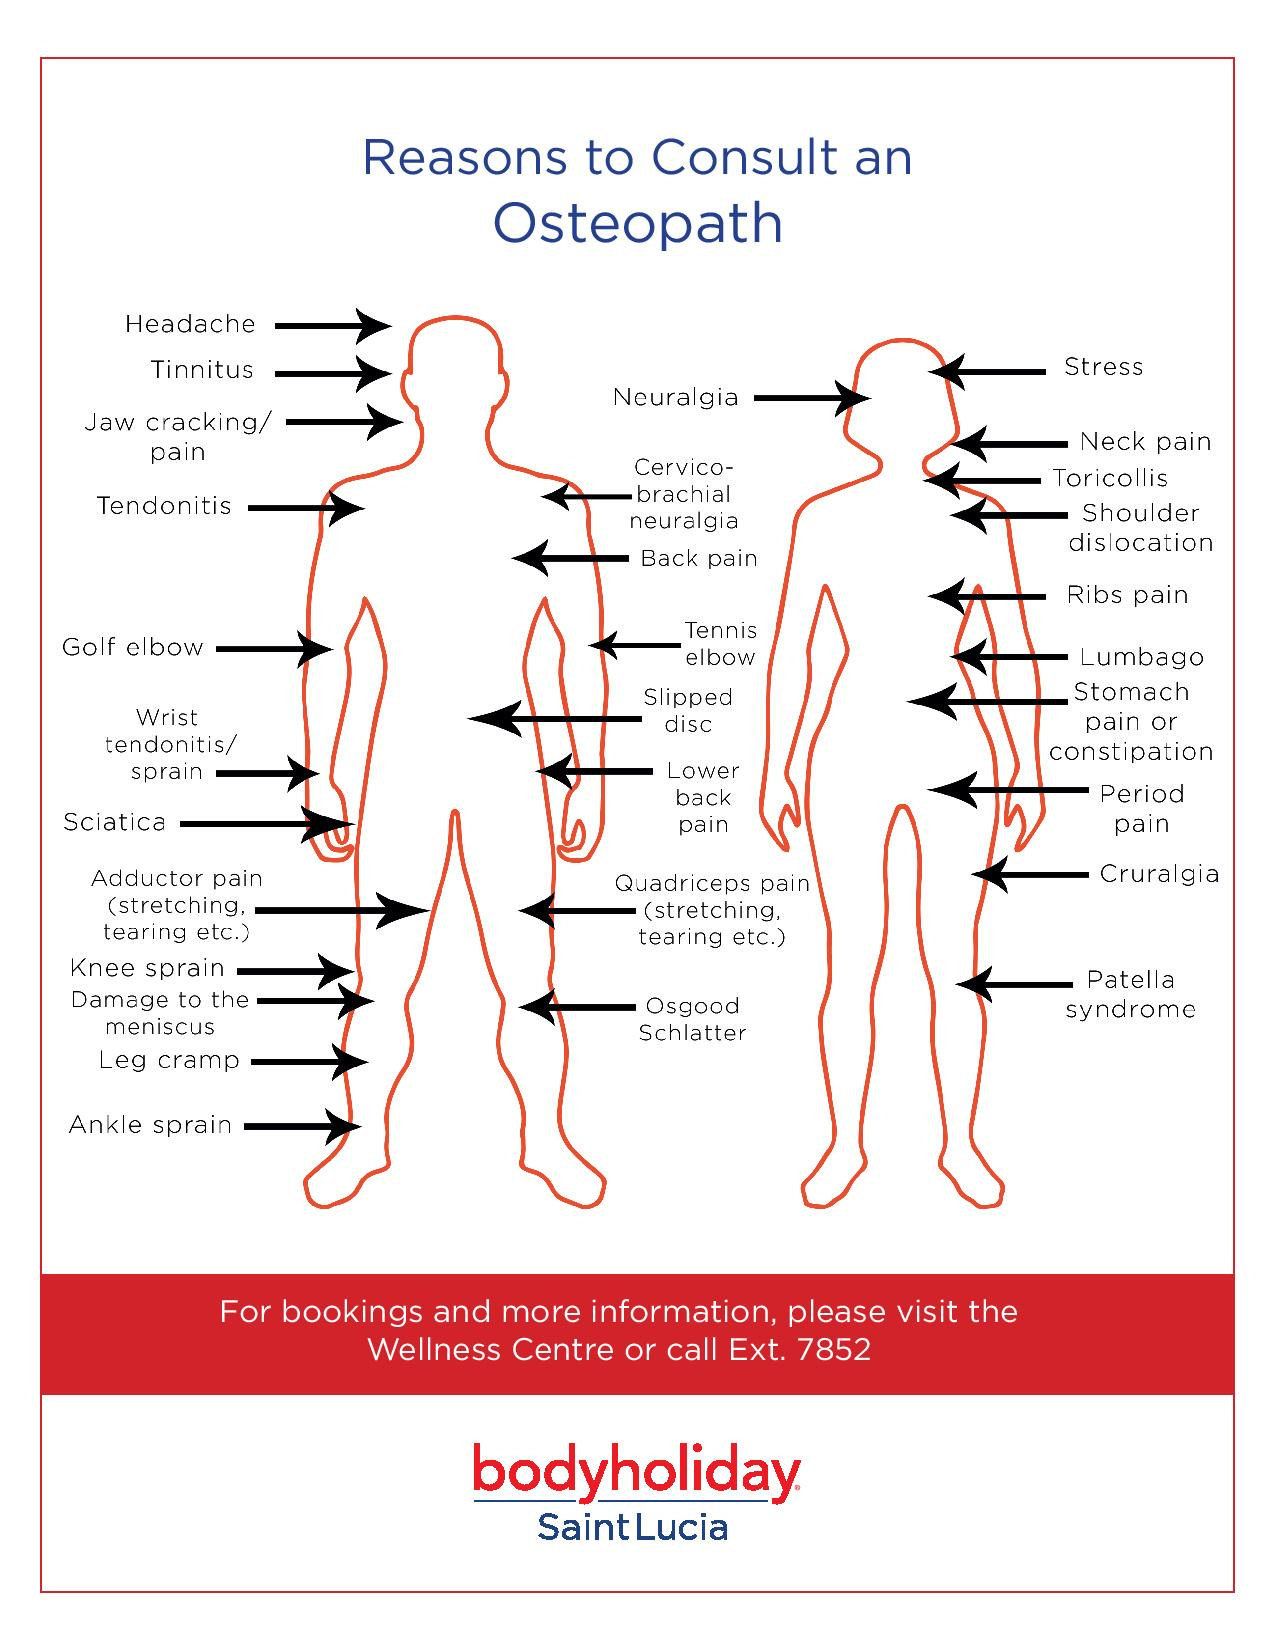 Osteopath chart and reasons to visit them at BodyHoliday.